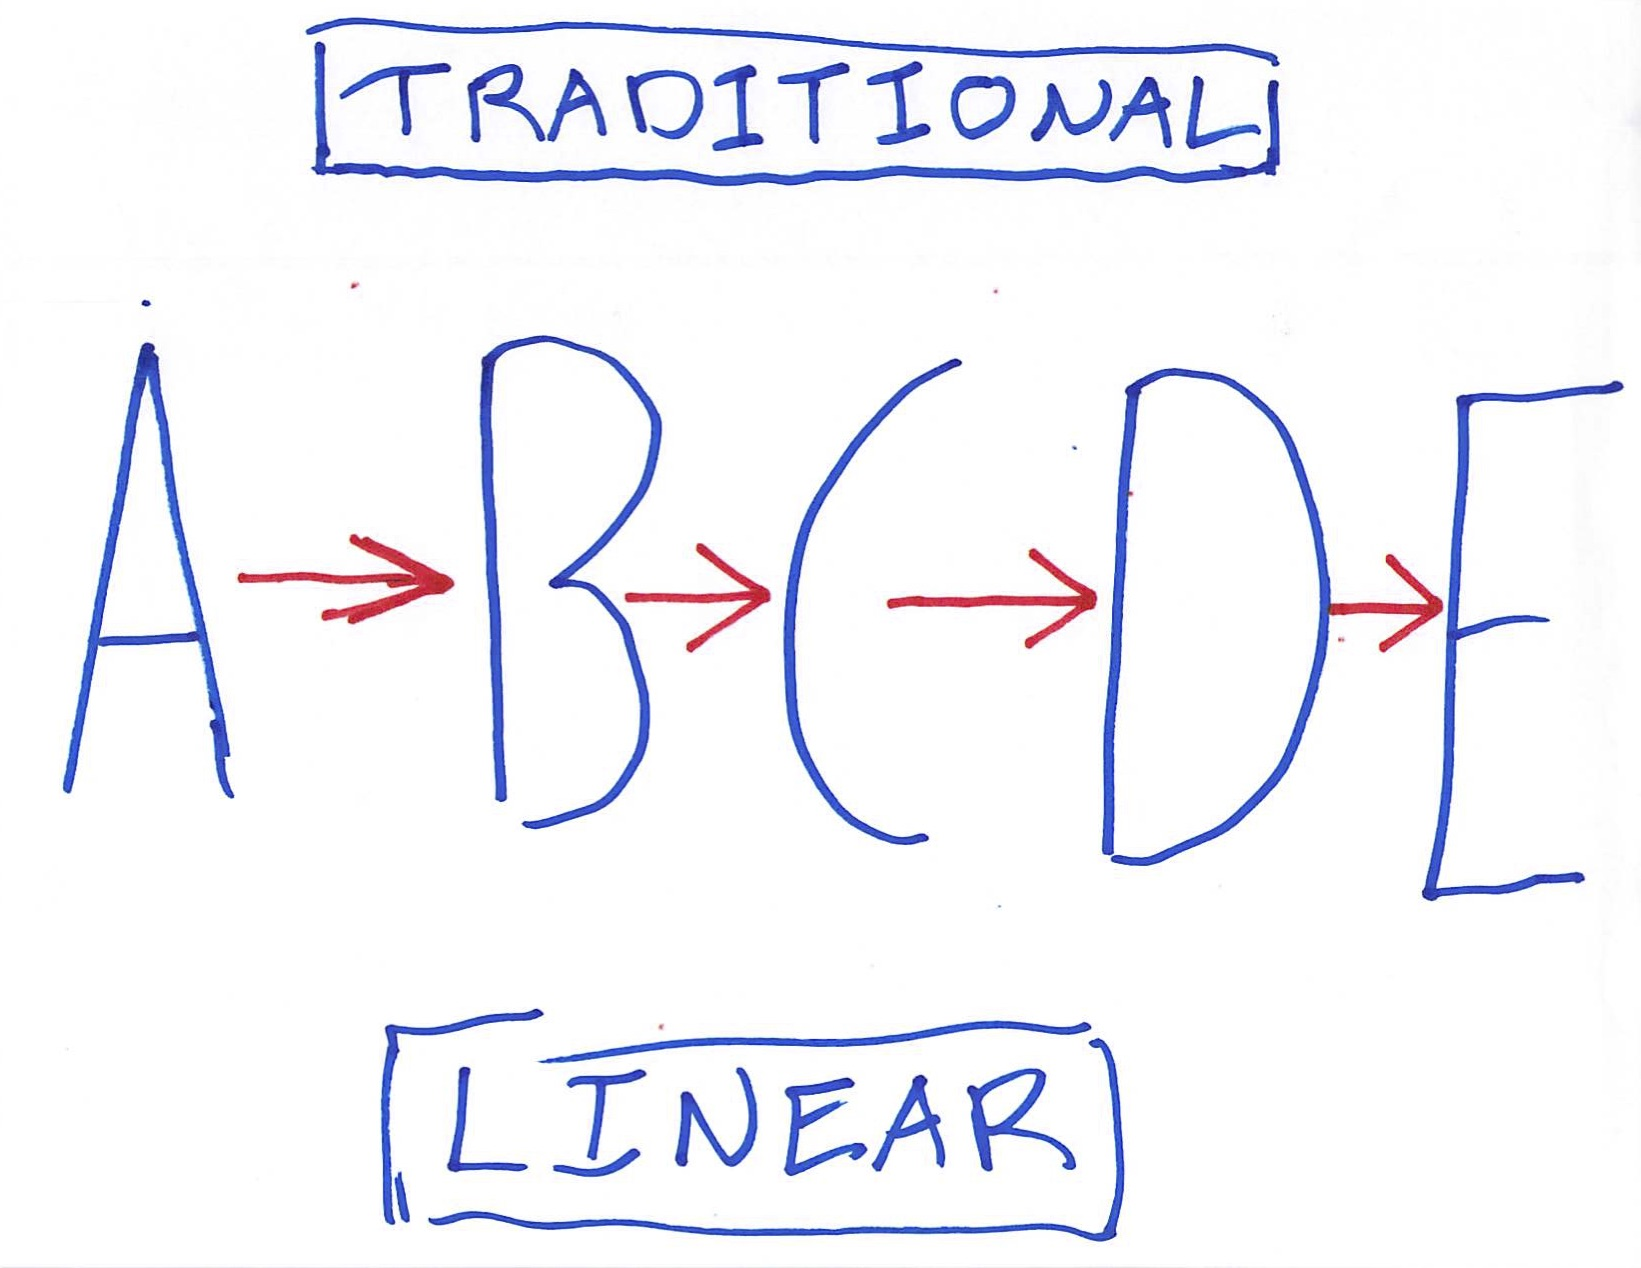 Abcde Linear